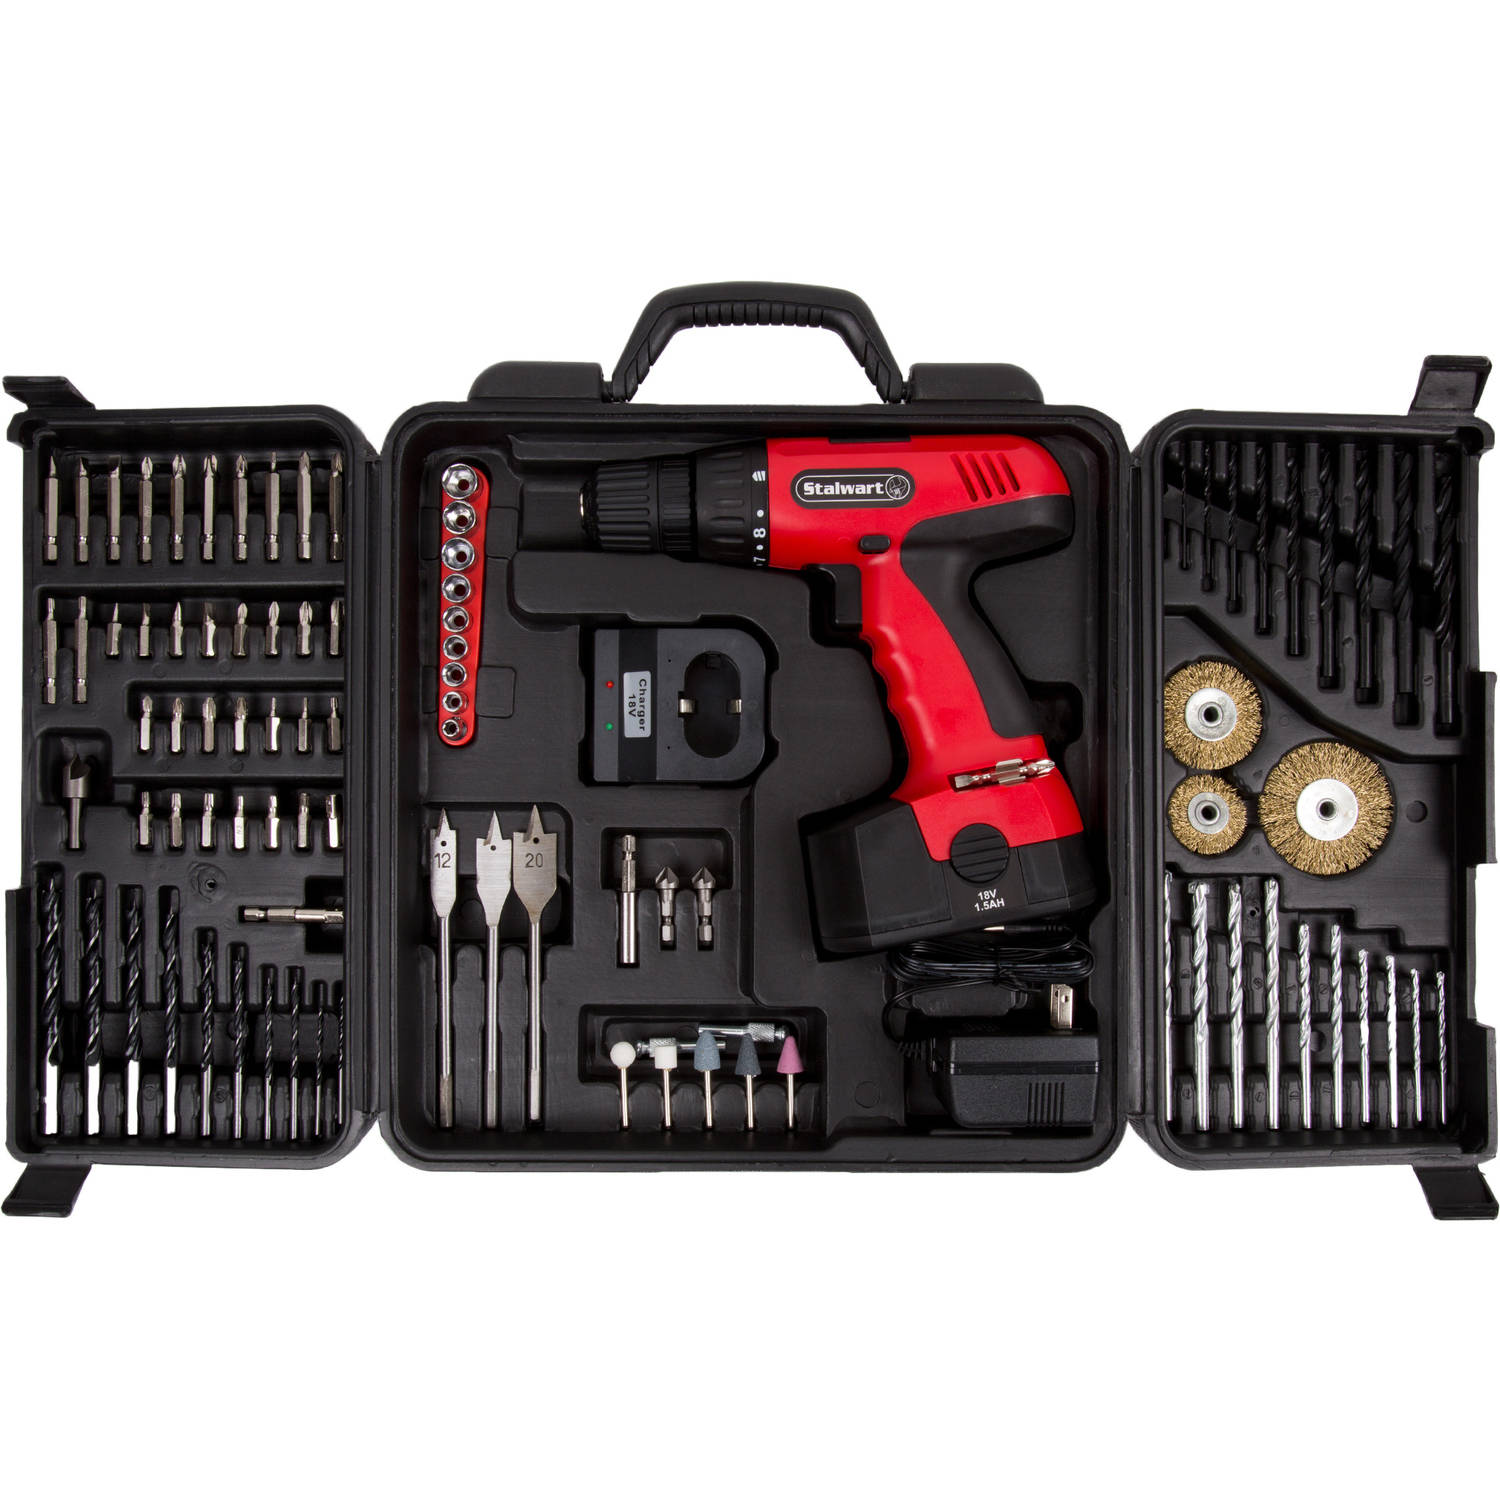 Stalwart 75-CD91 18-Volt Cordless Drill with 89-Piece Drill Set